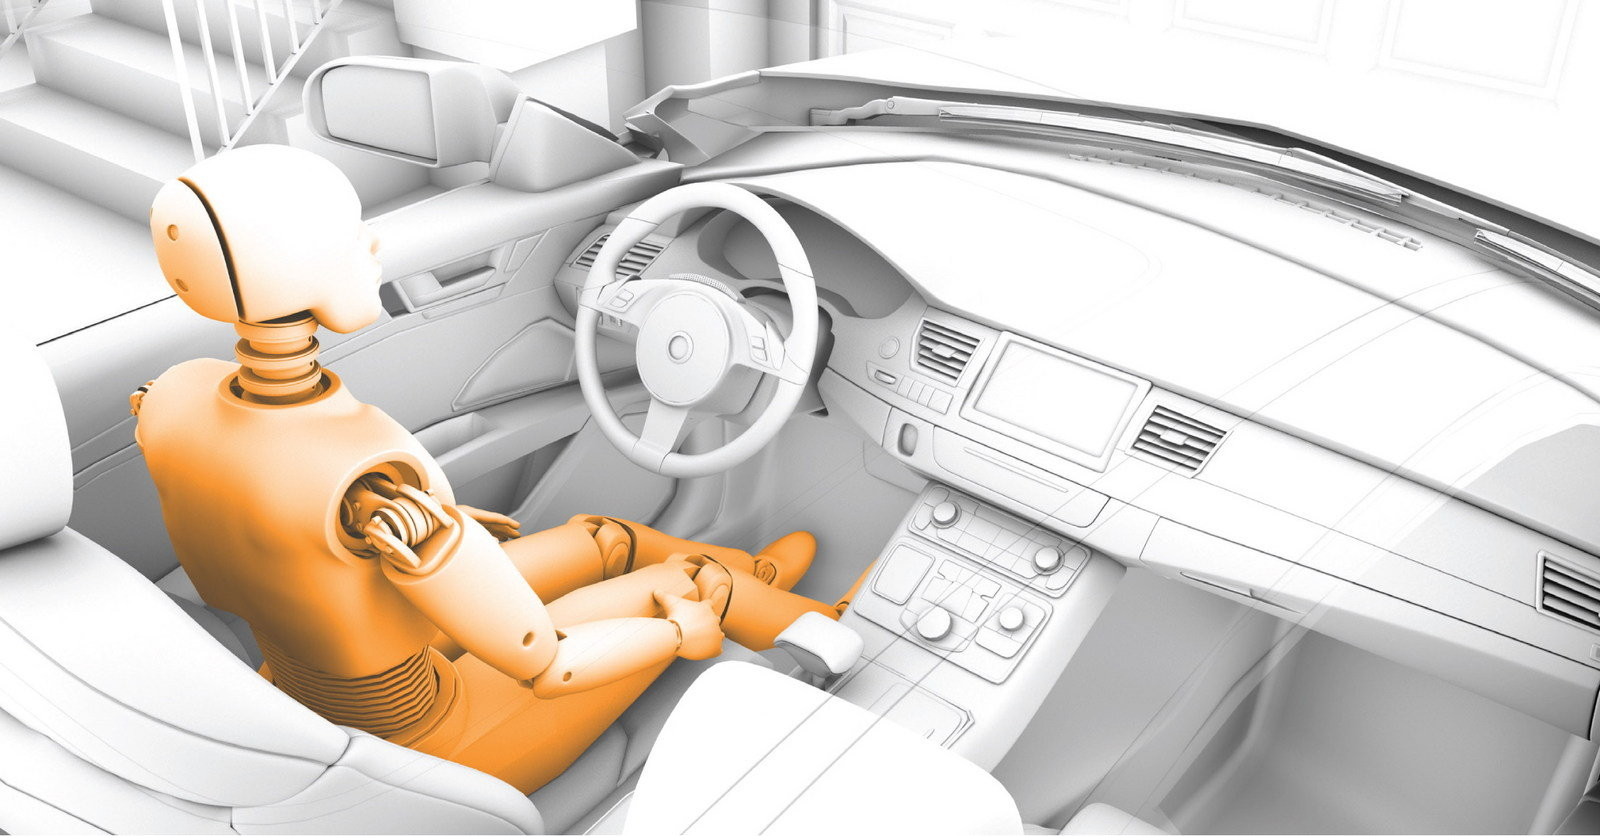 NHTSA Announces Driver Alcohol Detection System For Safety